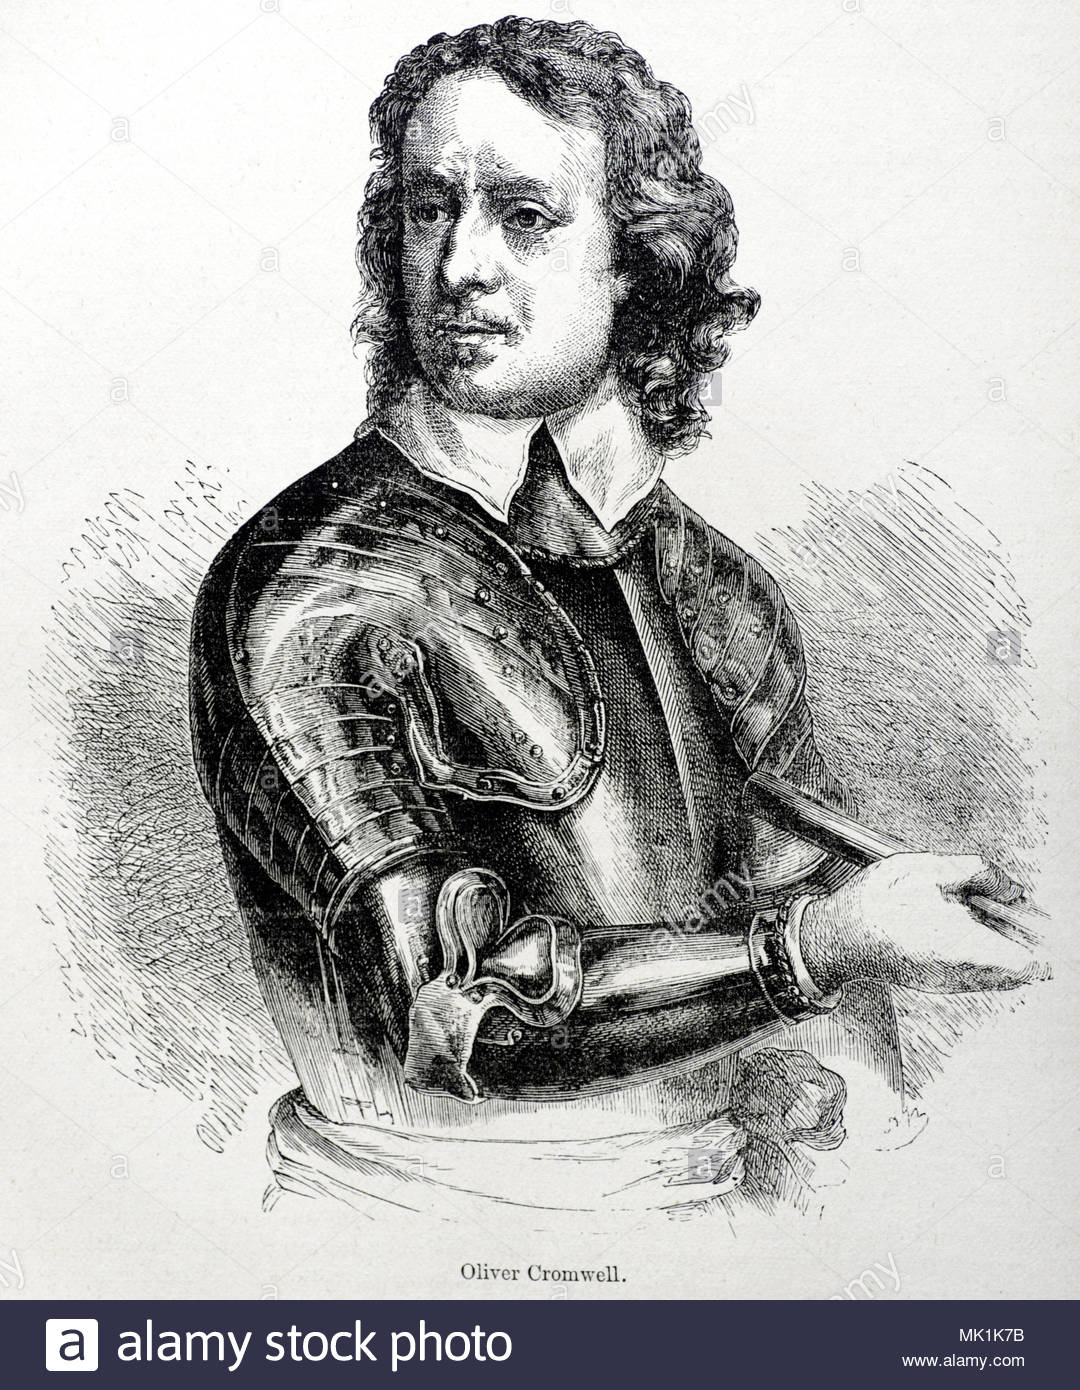 Oliver Cromwell portrait 1599 – 1658 was an English military and political leader, antique illustration from circa 1880 - Stock Image